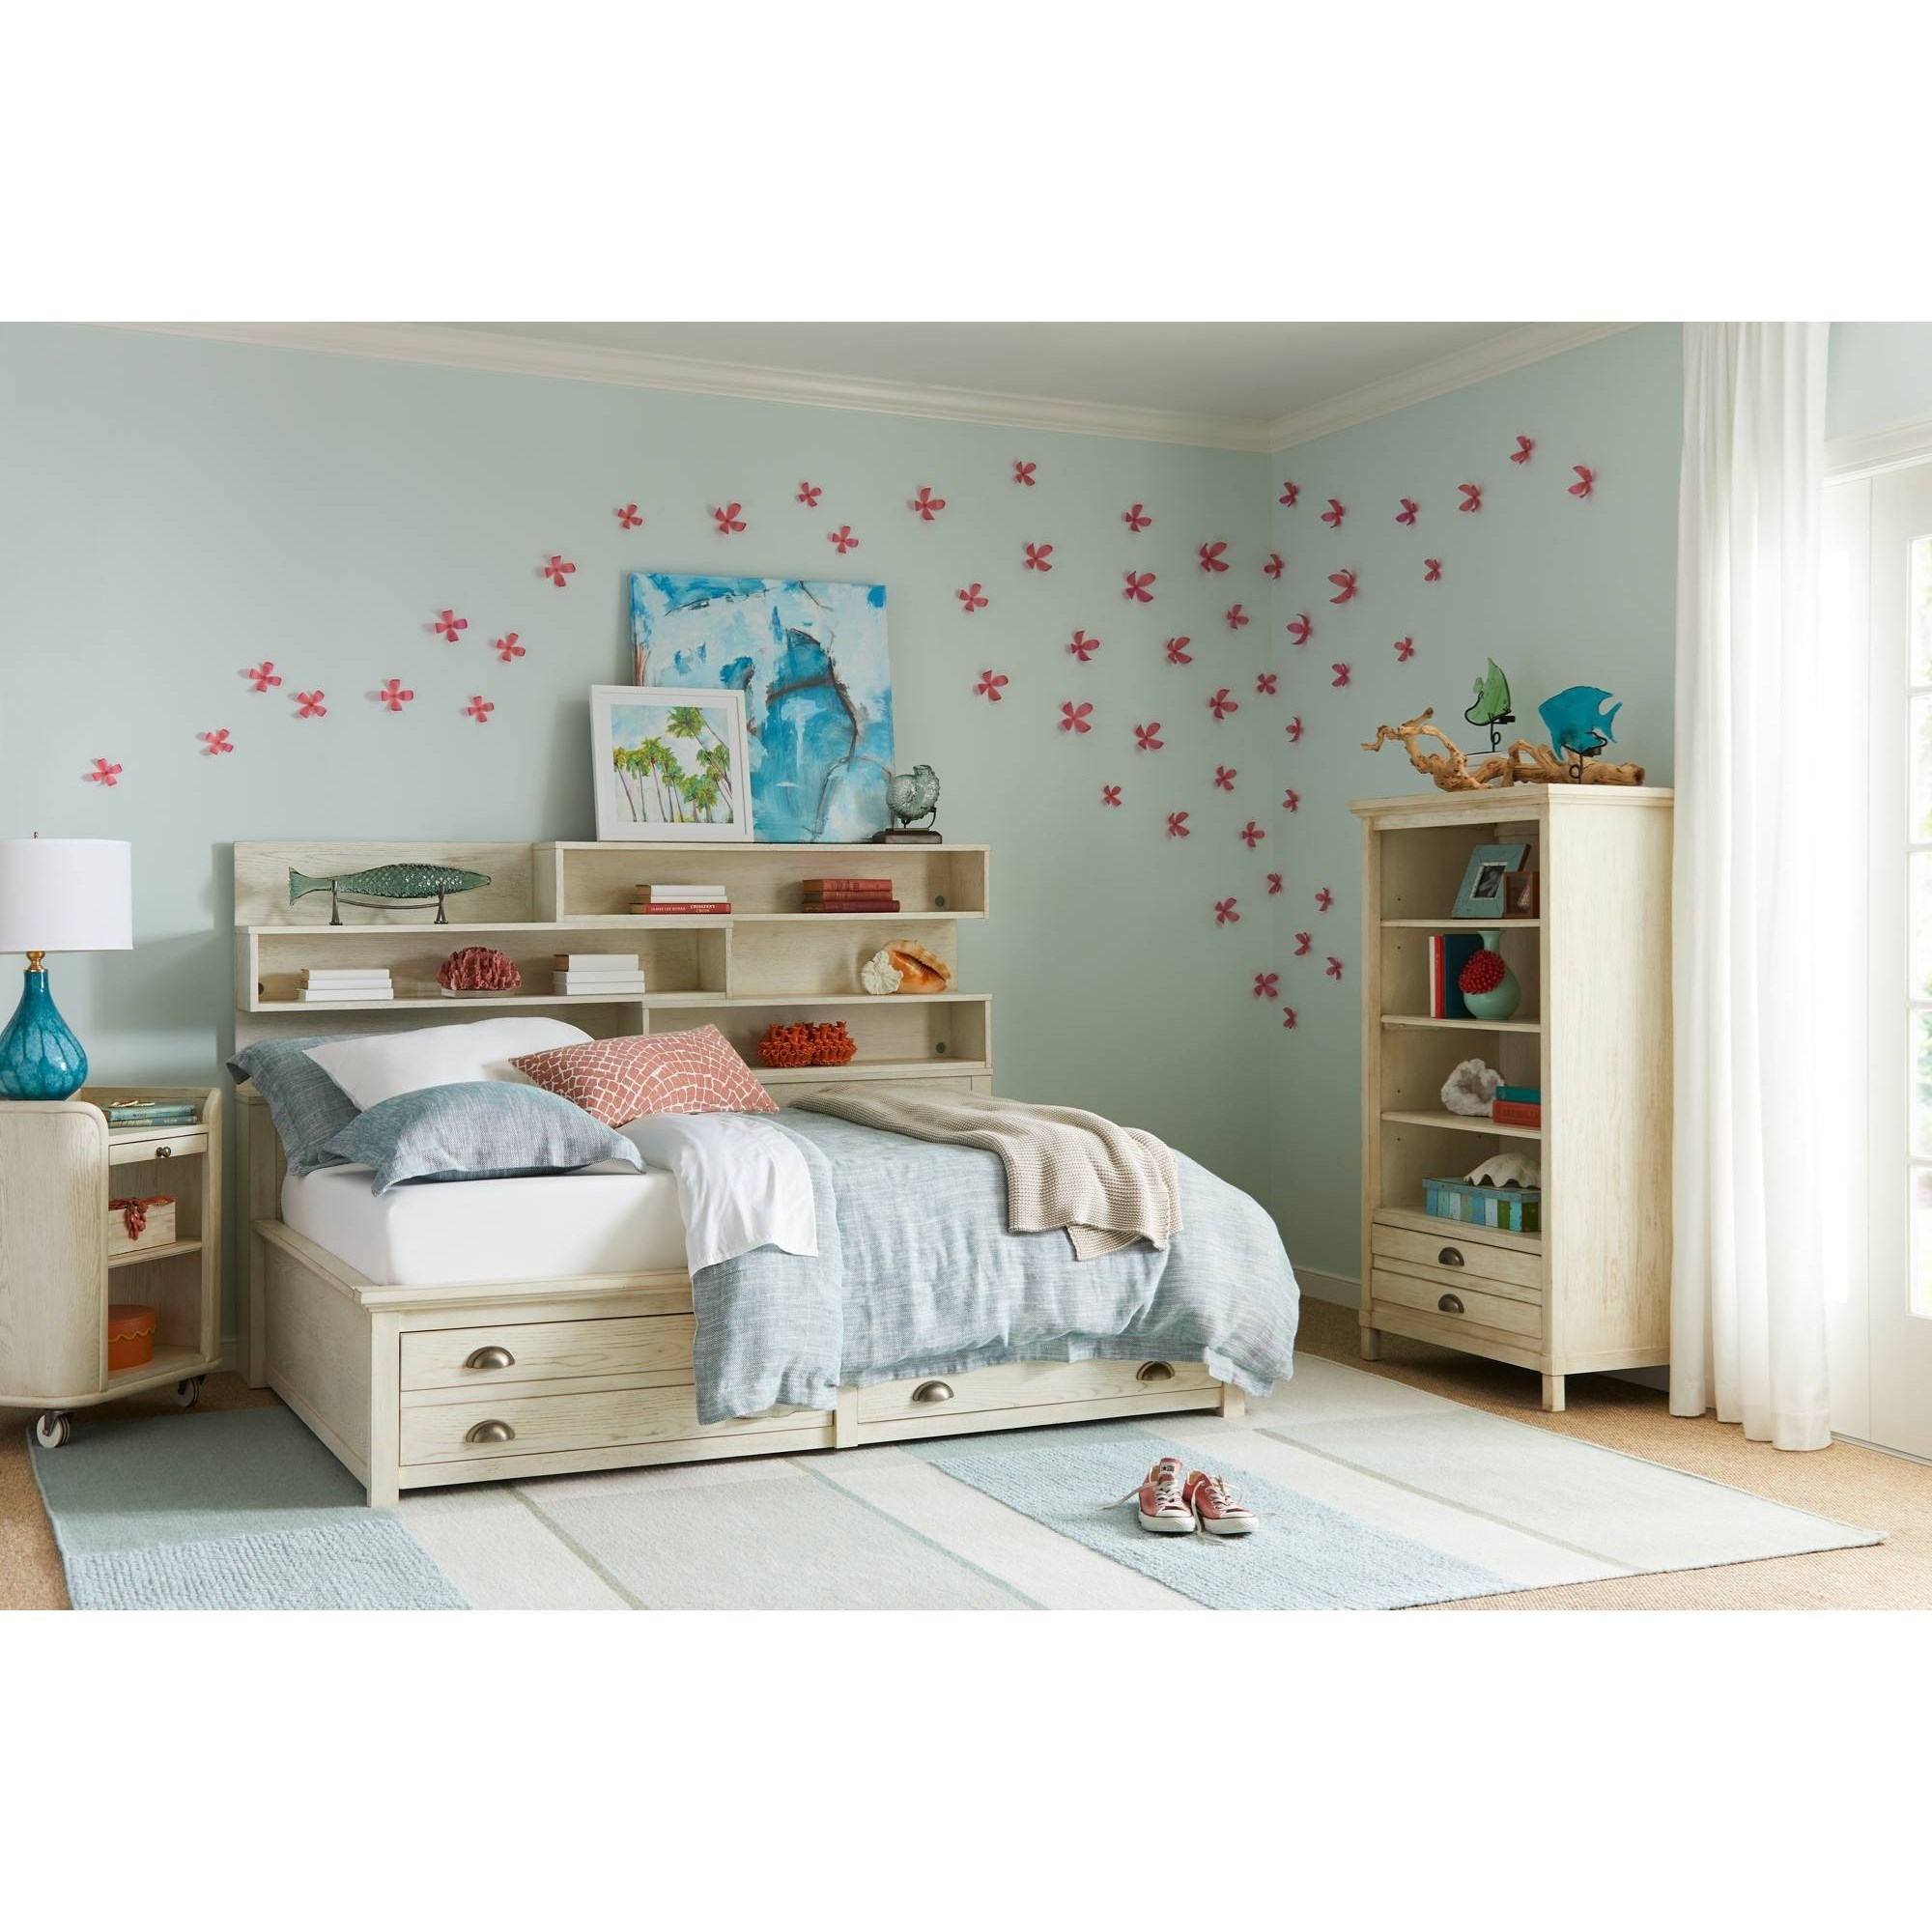 Driftwood Park Twin Bedroom Group by Stone & Leigh Furniture at Alison Craig Home Furnishings